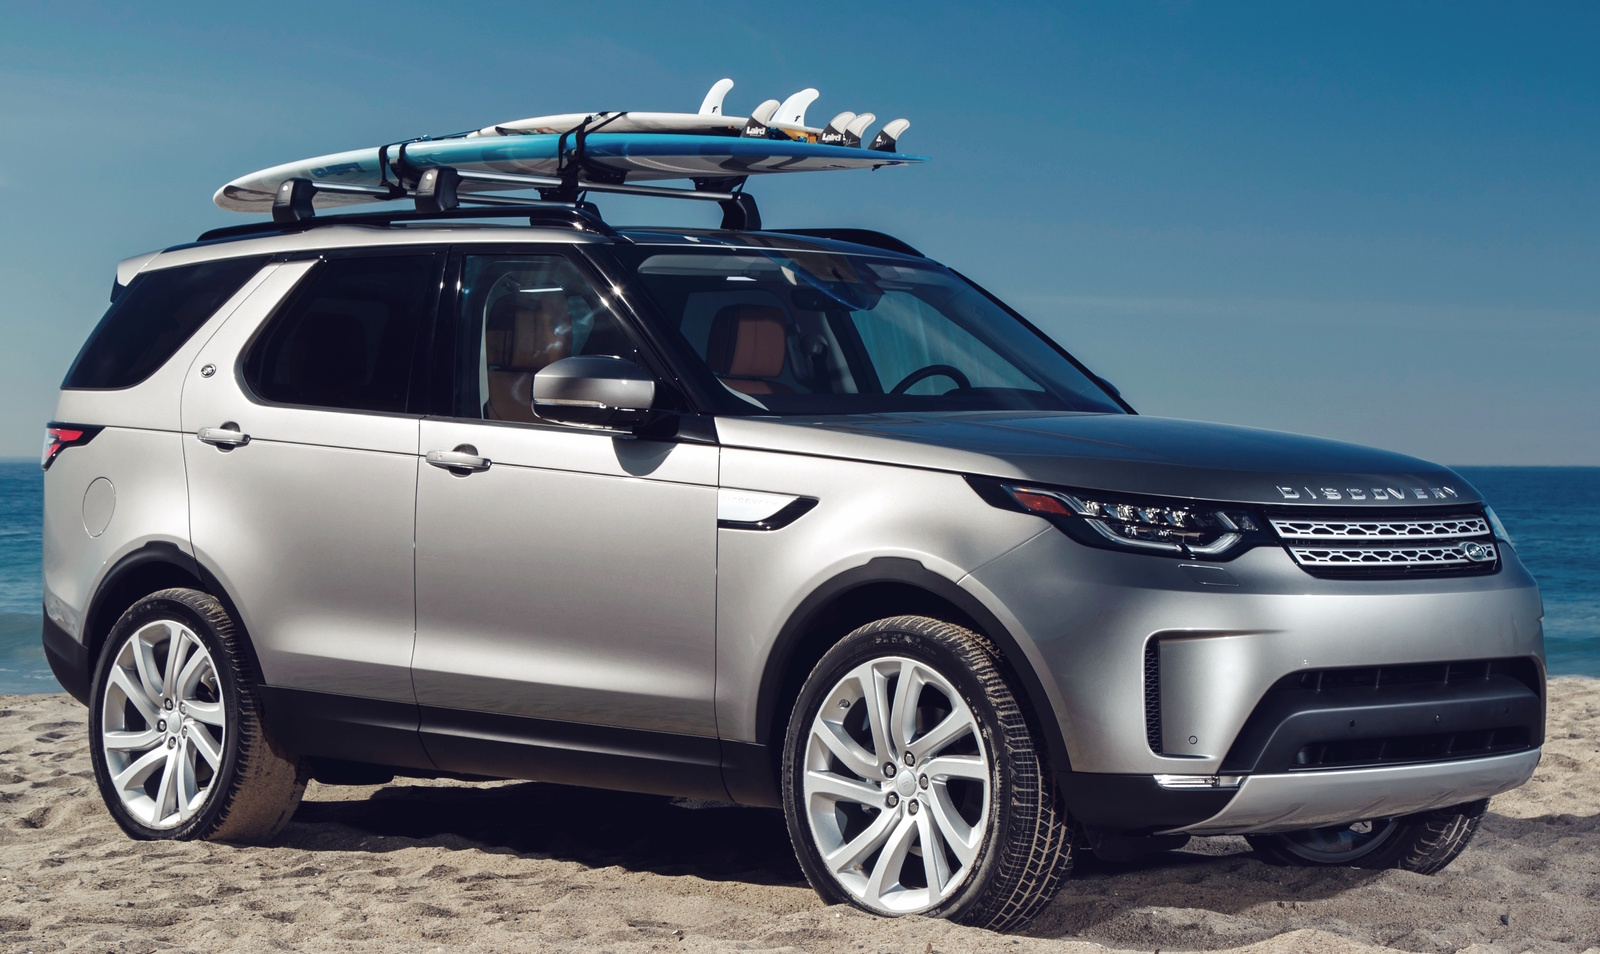 2017 land rover discovery for sale in dallas tx cargurus. Black Bedroom Furniture Sets. Home Design Ideas